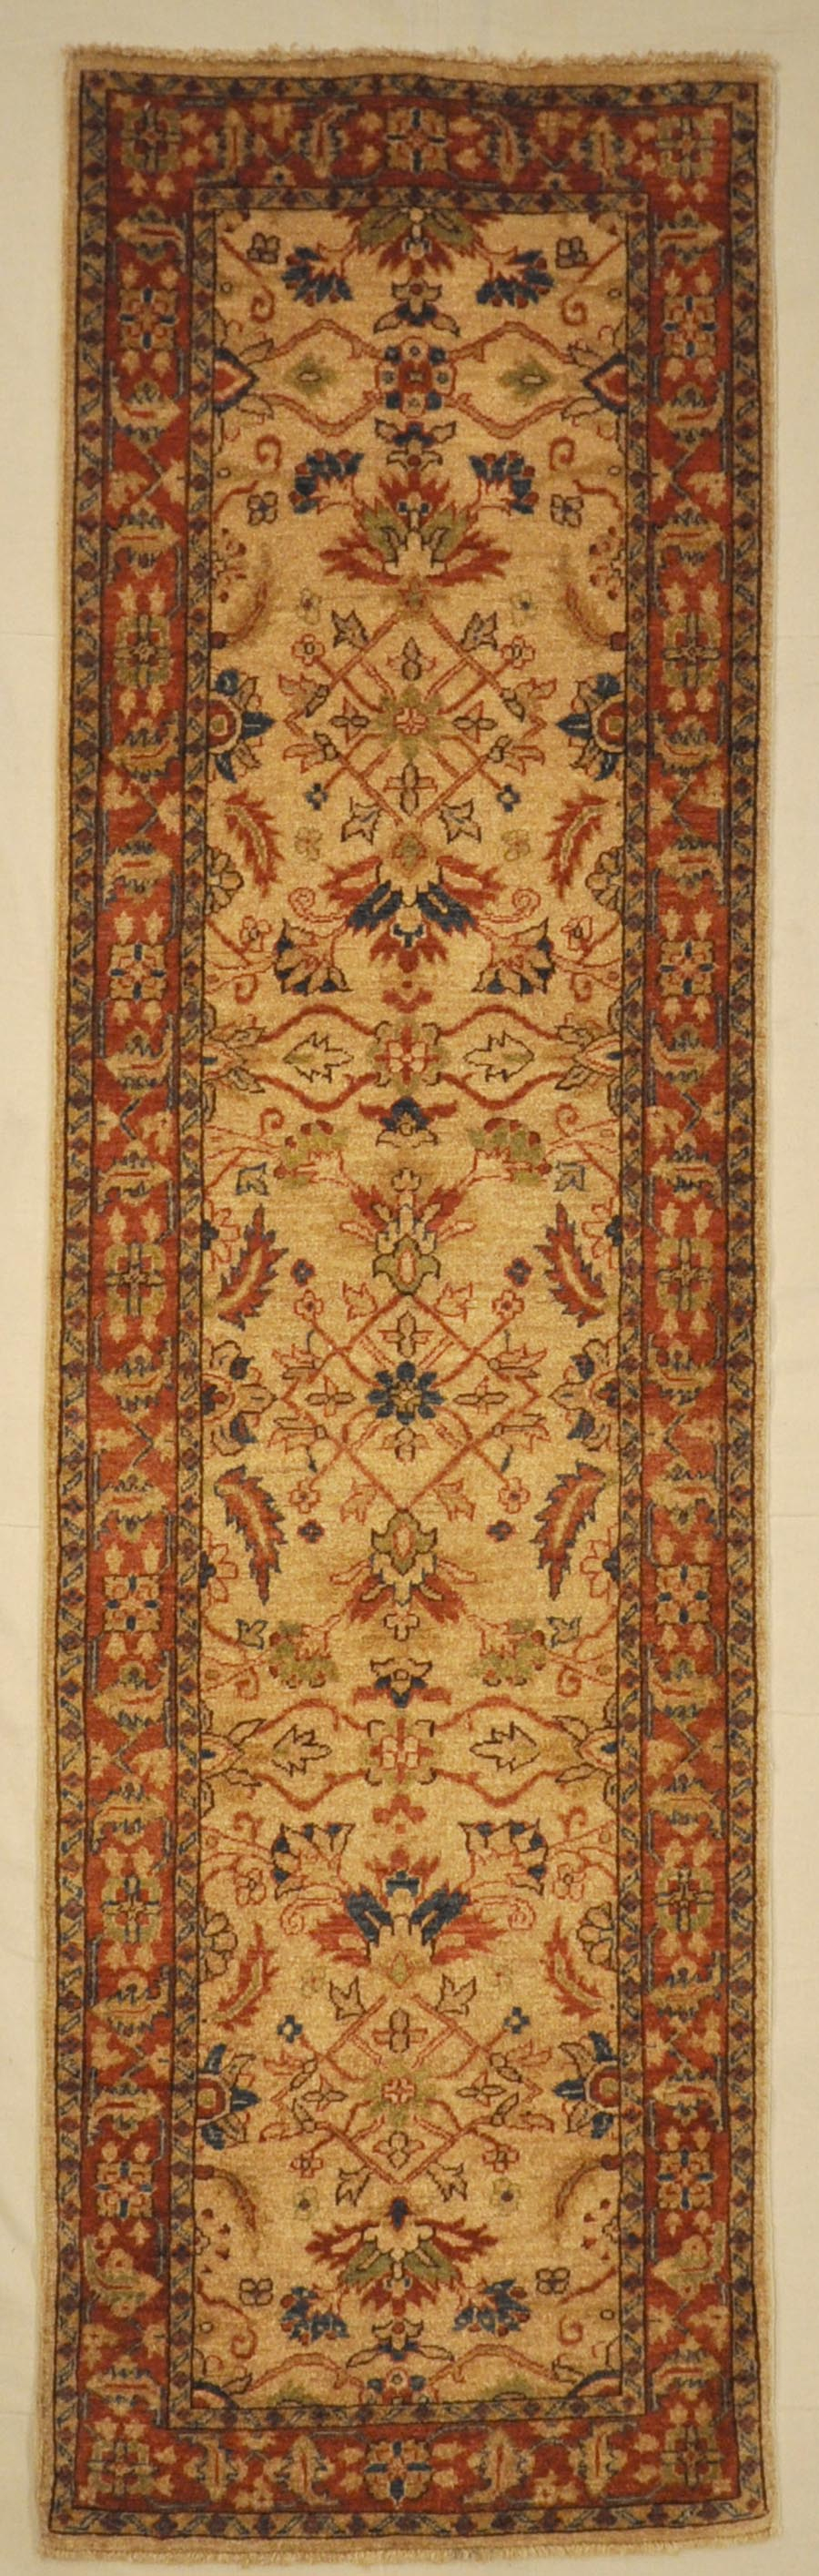 Farahan Runner rugs and carpets that were produced in the Arak region of west central Iran, are remarkable for their design.